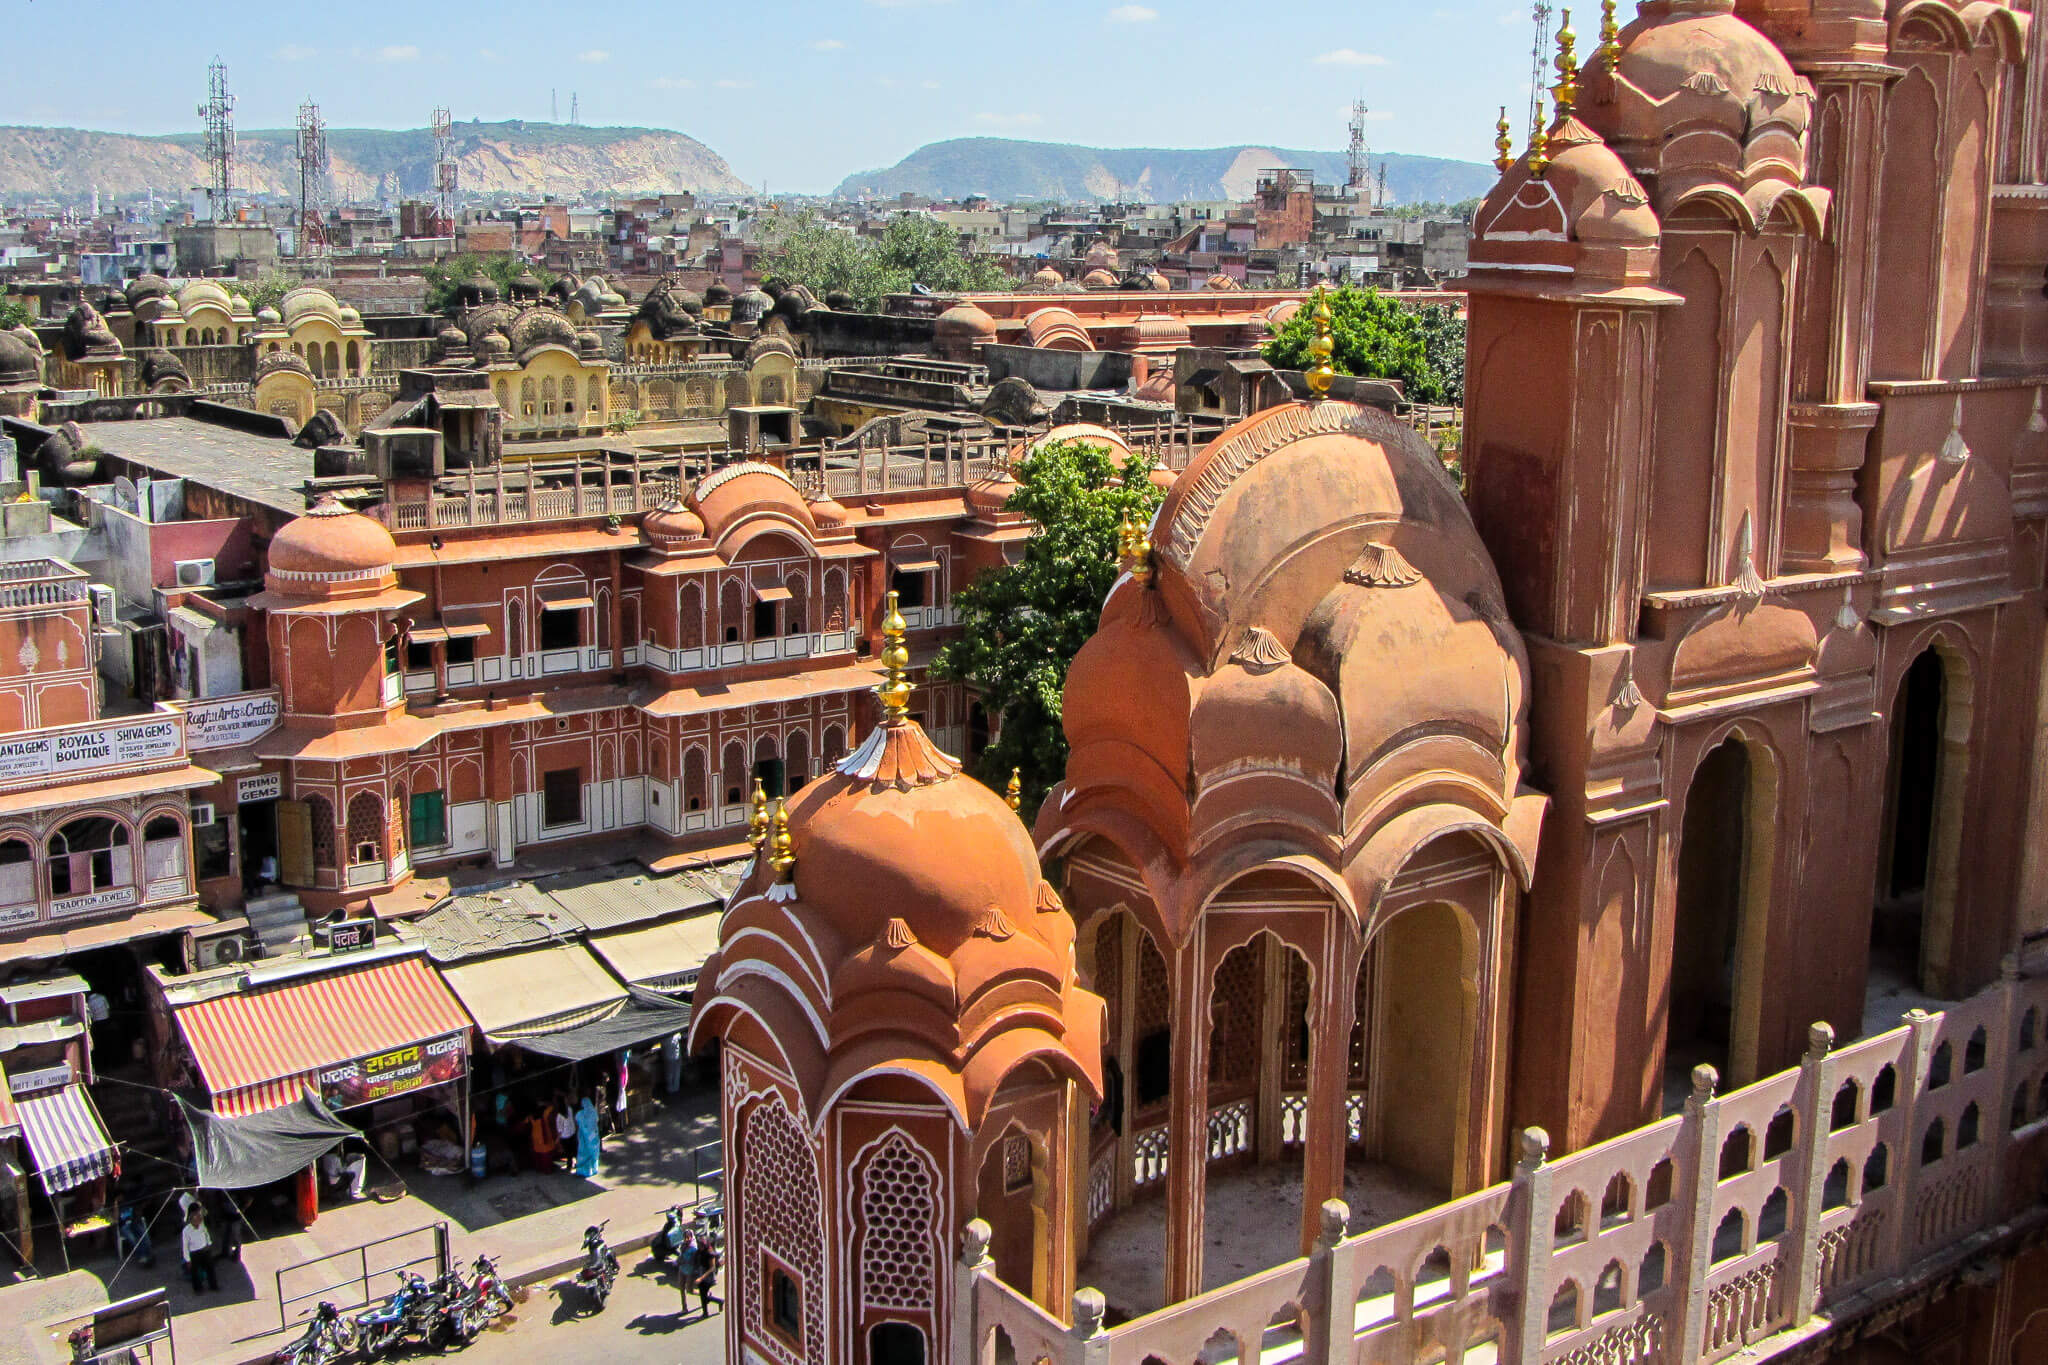 The architecture of the Pink City of Jaipur